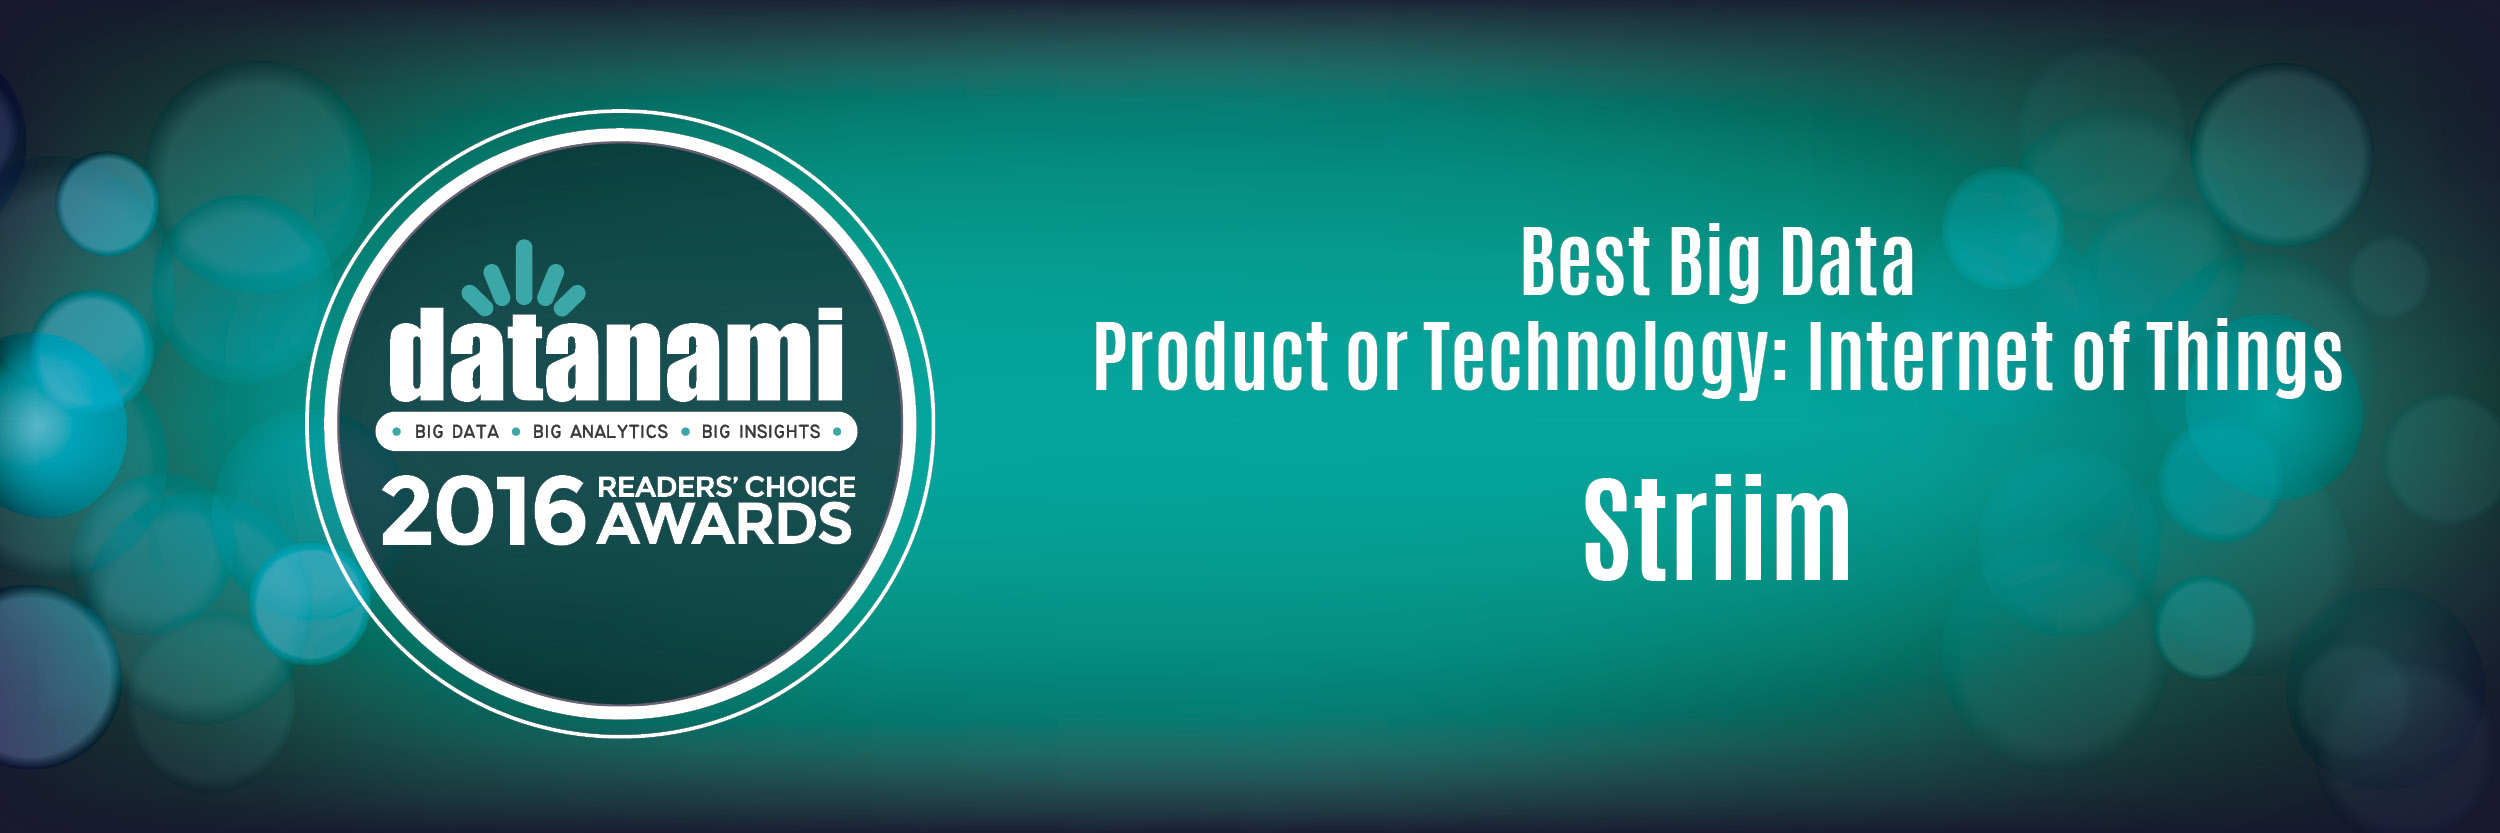 Striim Wins Datanami Readers' Choice Award for Best Big Data Product or Technology: Internet of Things